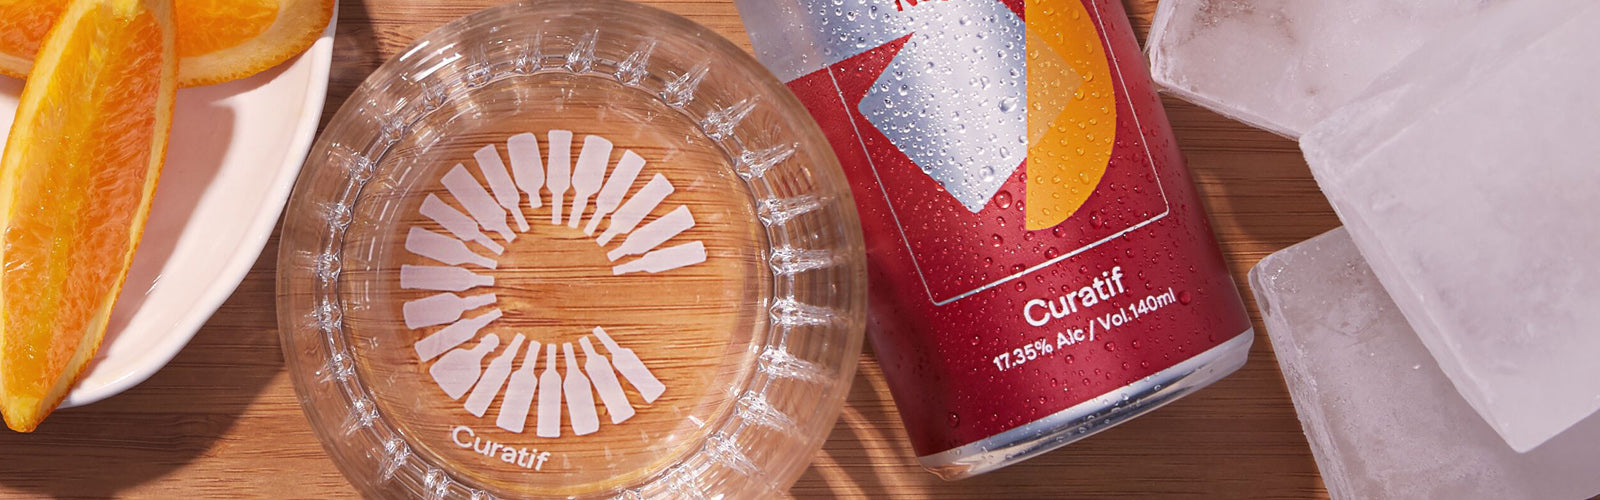 Curatif Canned Cocktail